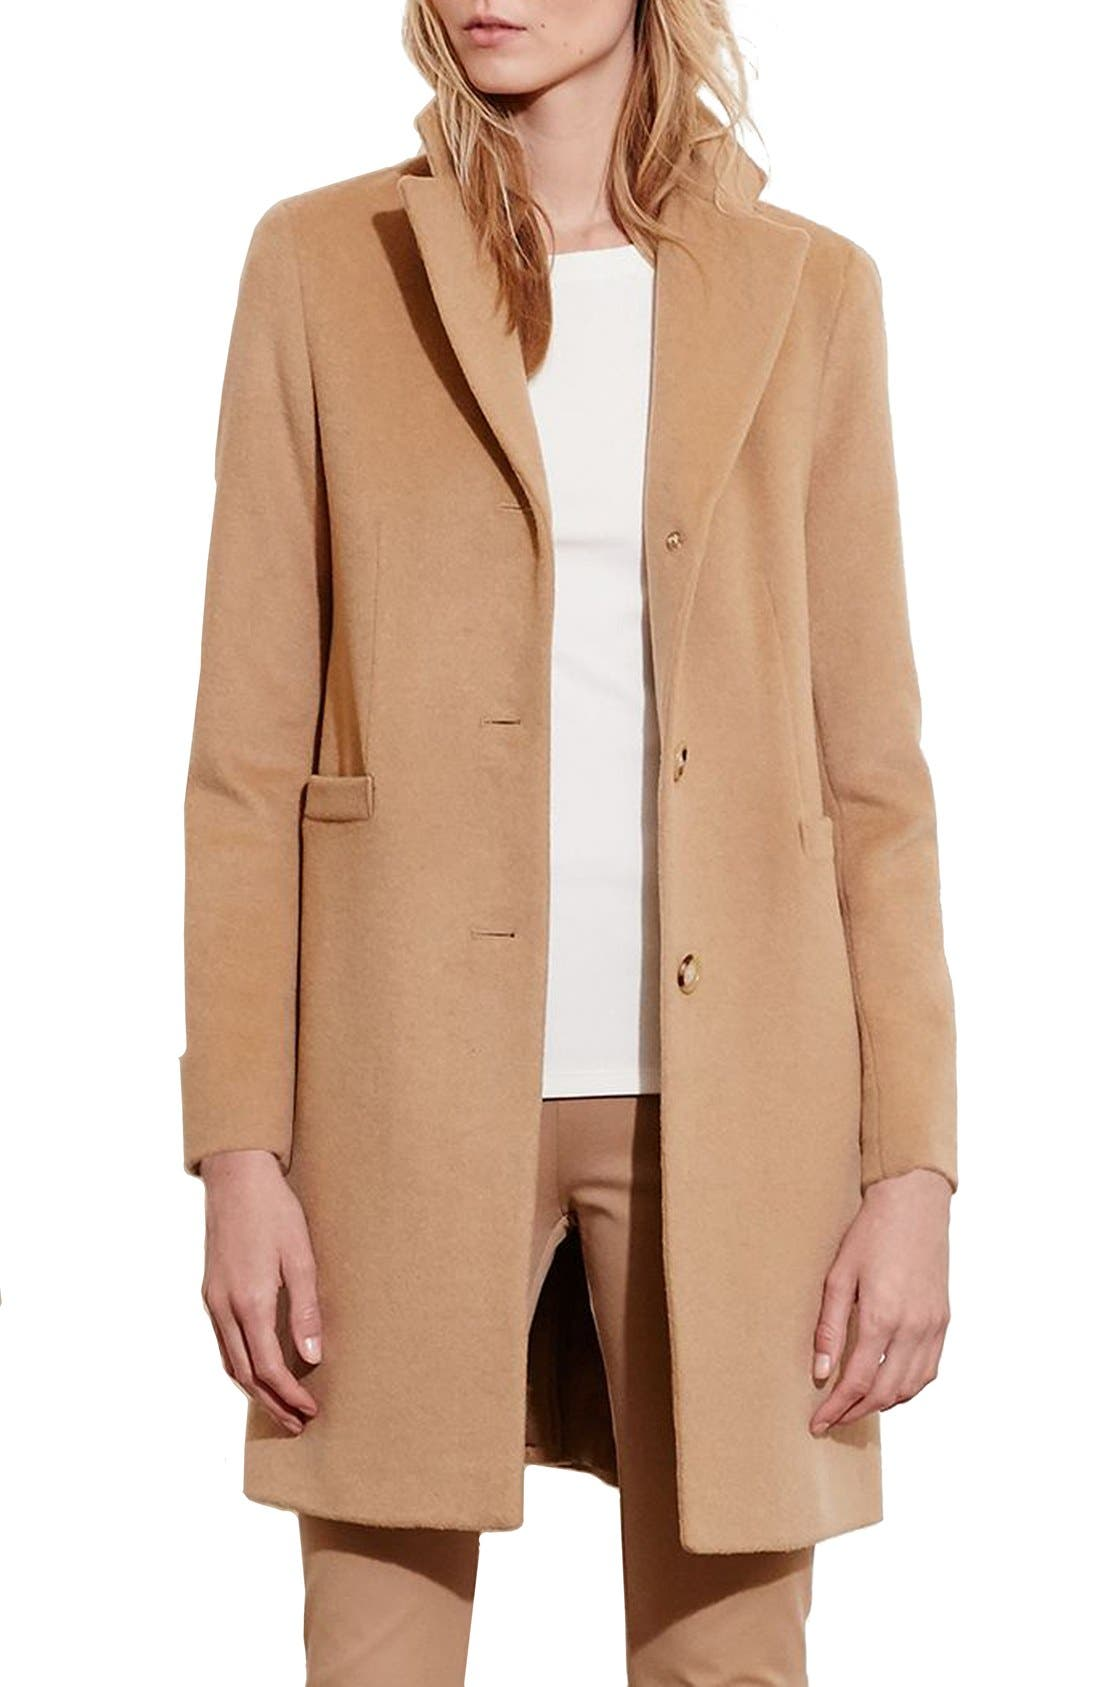 Camel coat for petites